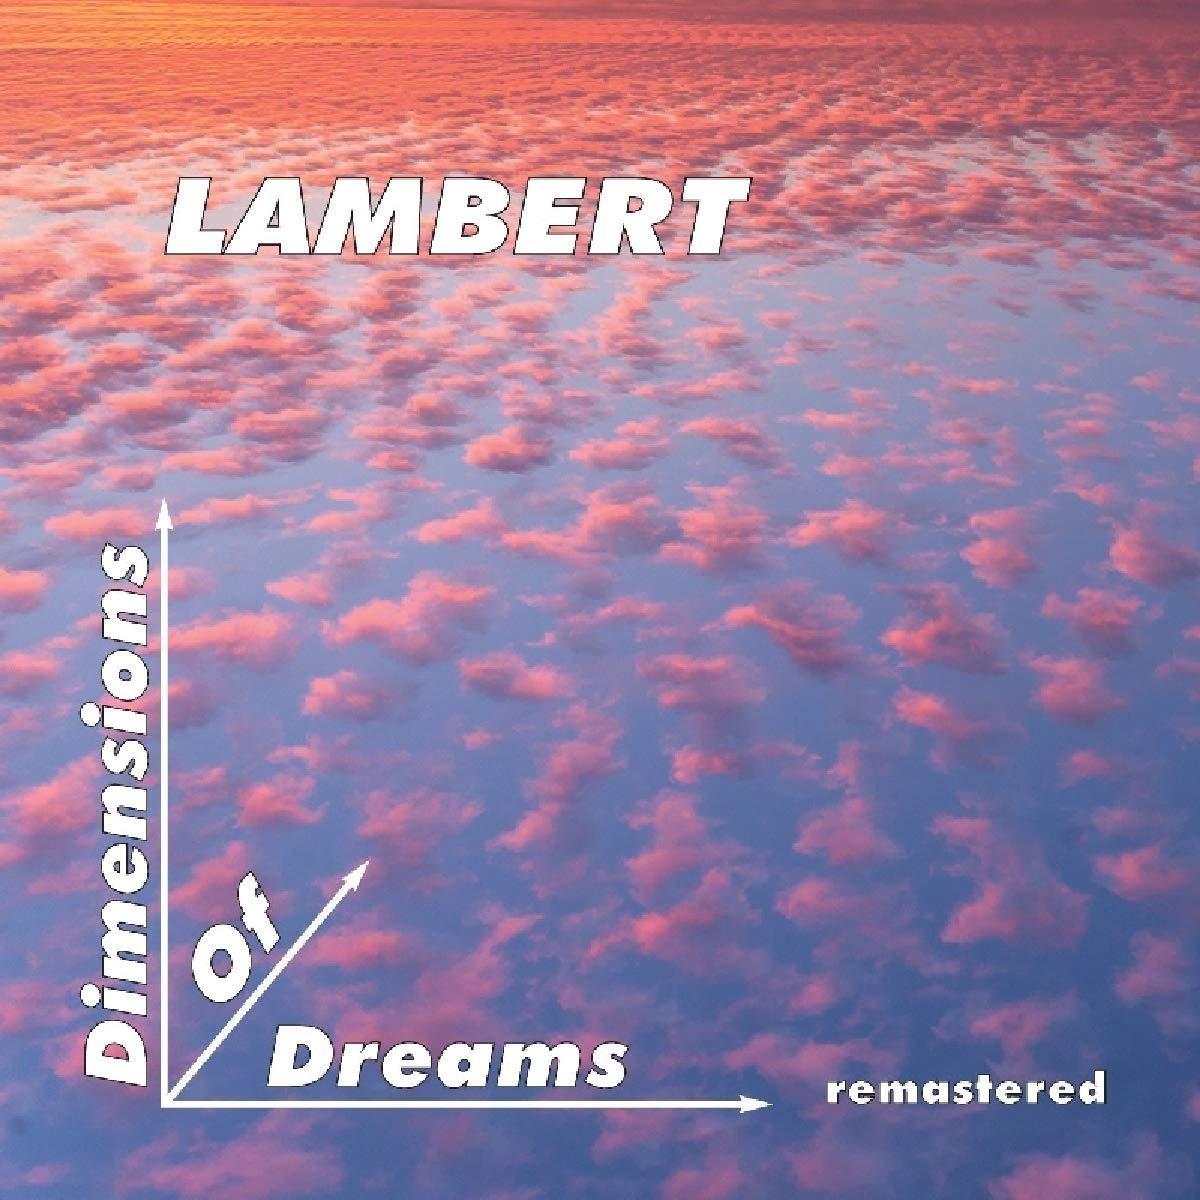 Lambert — Dimensions of Dreams - Remastered